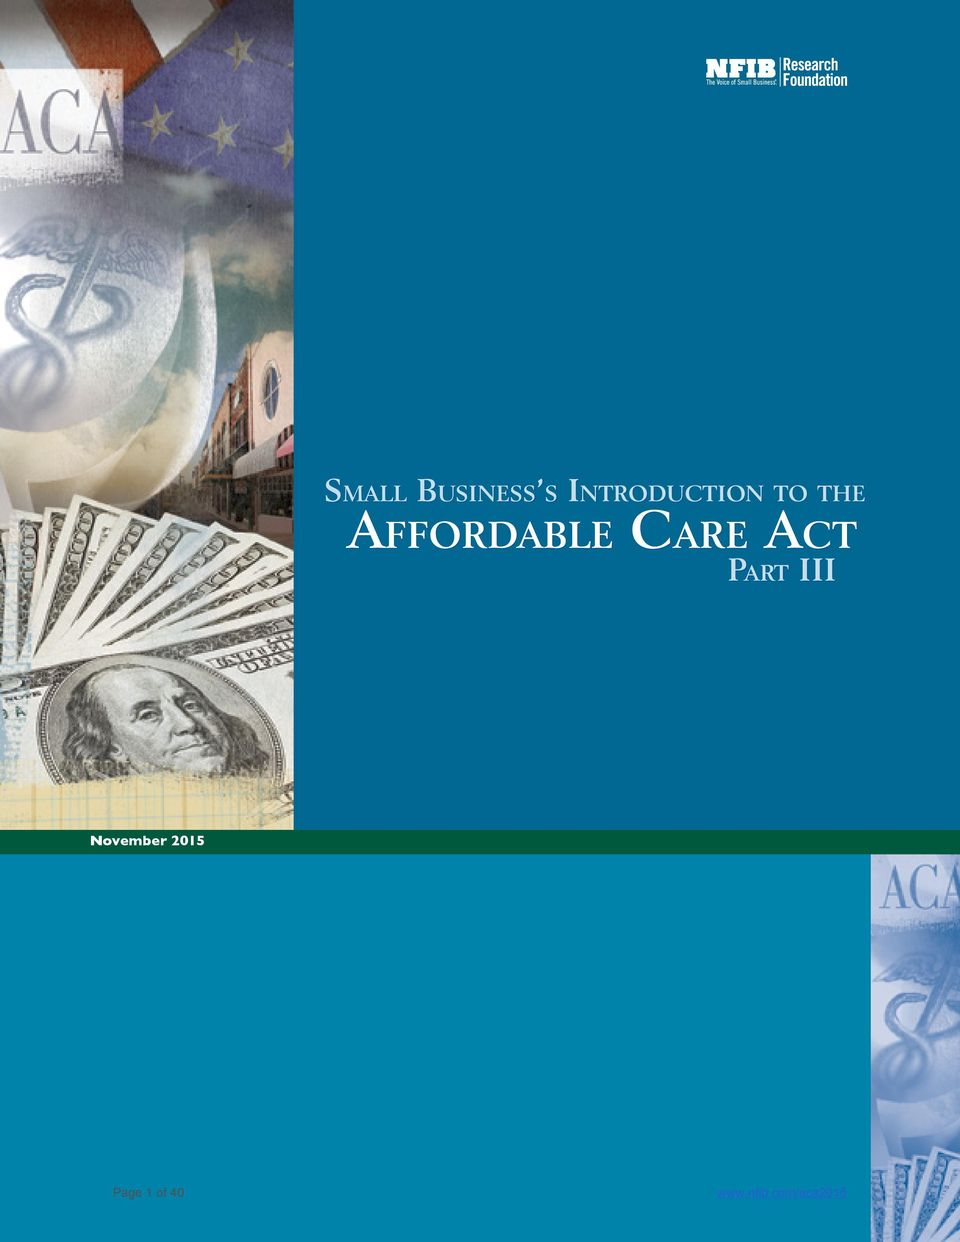 an introduction to the affordable care act An estimated 169 million previously uninsured americans gained health  insurance coverage as a result of the affordable care act.